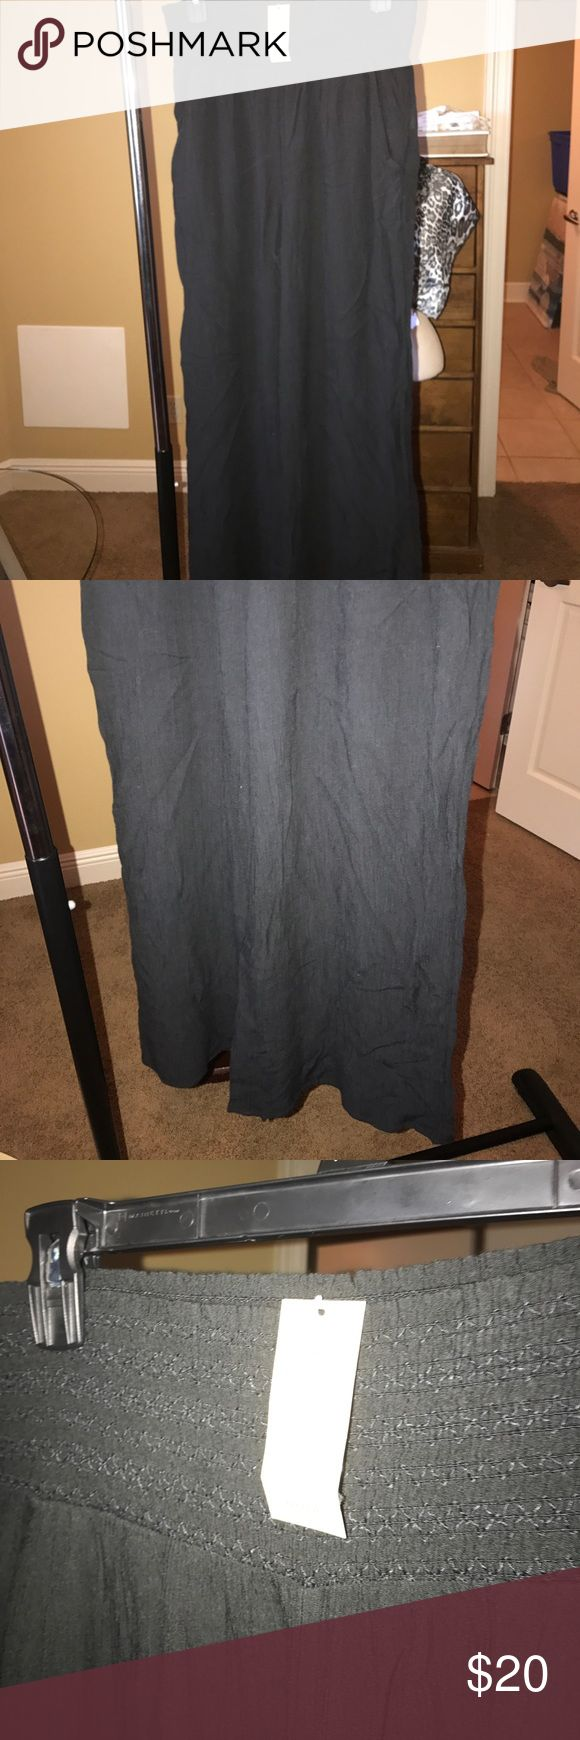 AEO NWT Wide Leg Soft Pants The MSCloset strives to provide you with quality items. We are a family business established in 2014. We accept returns on NEW ITEMS ONLY, with exception of underwear. We provide the clothing manufacturers size, which may differ from actual wear. American Eagle Outfitters Pants Track Pants & Joggers